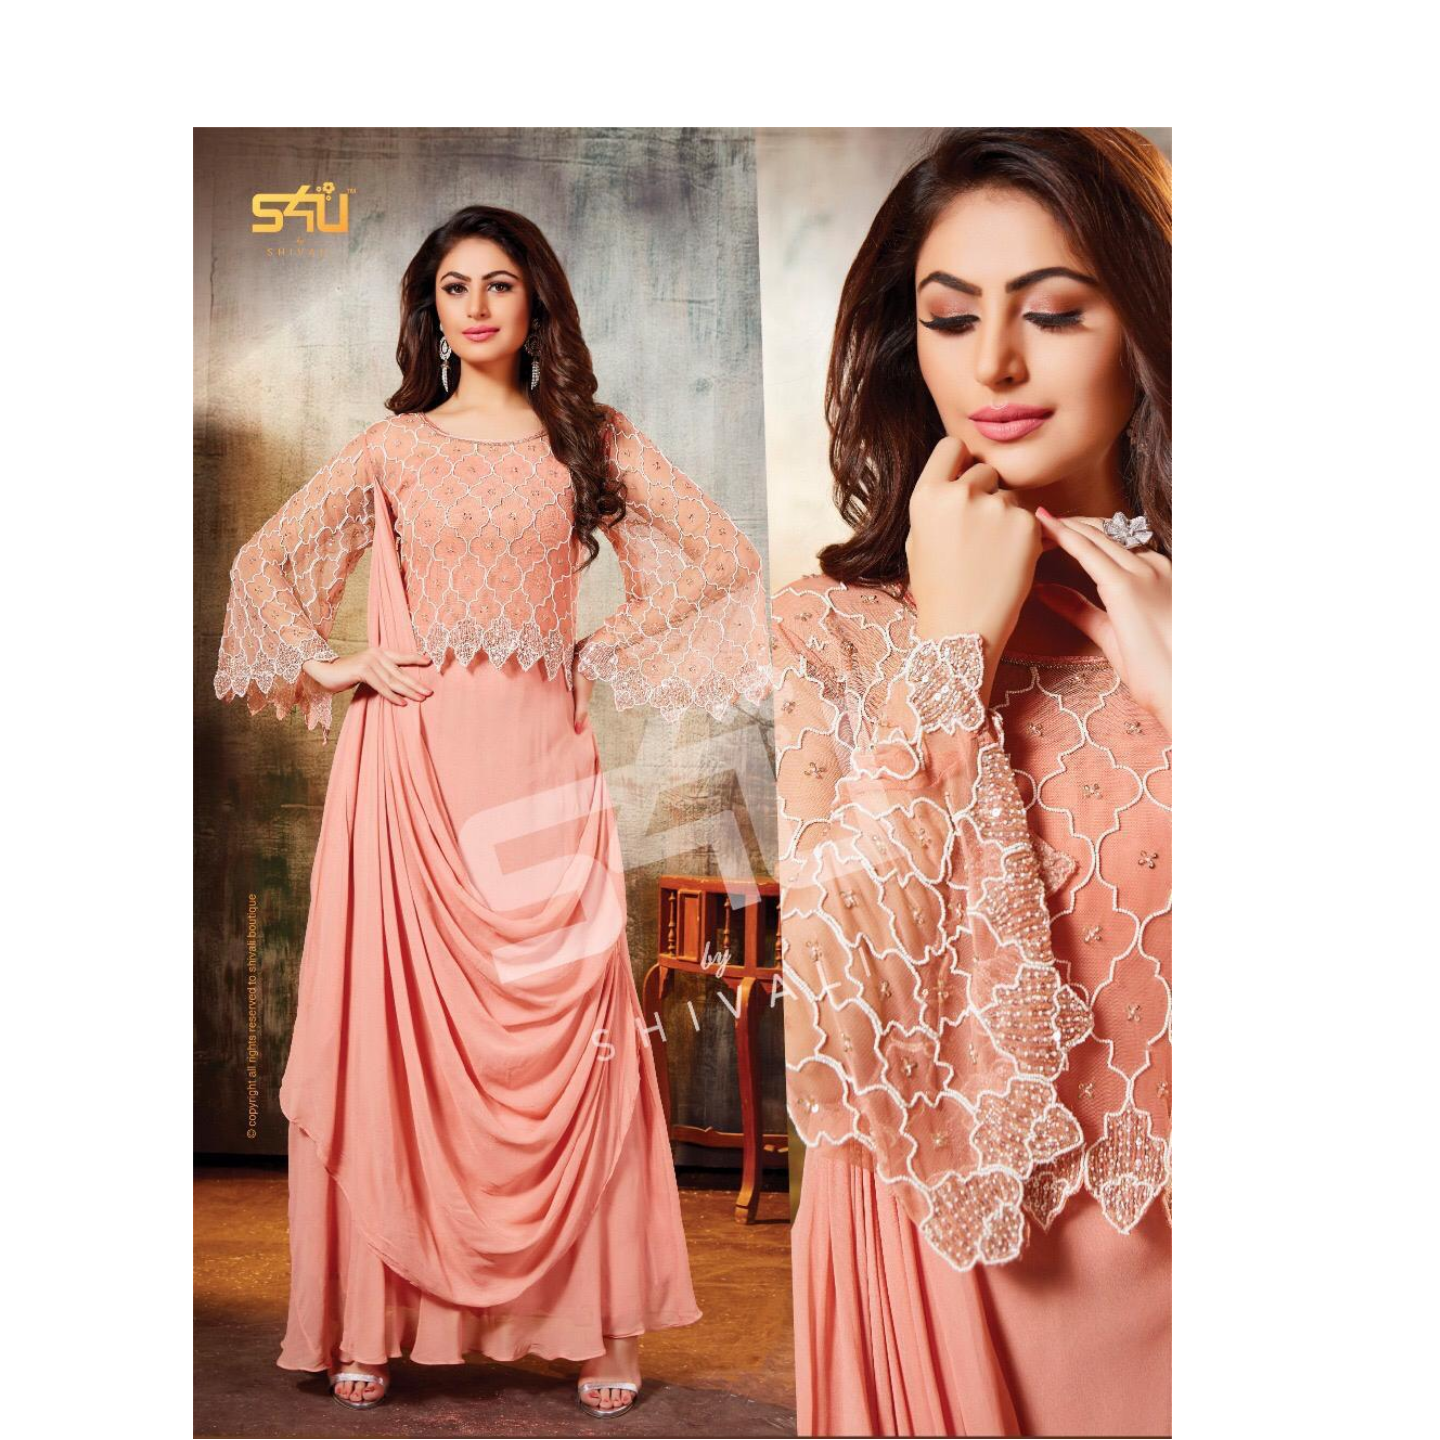 Pretty dress with attached dupatta